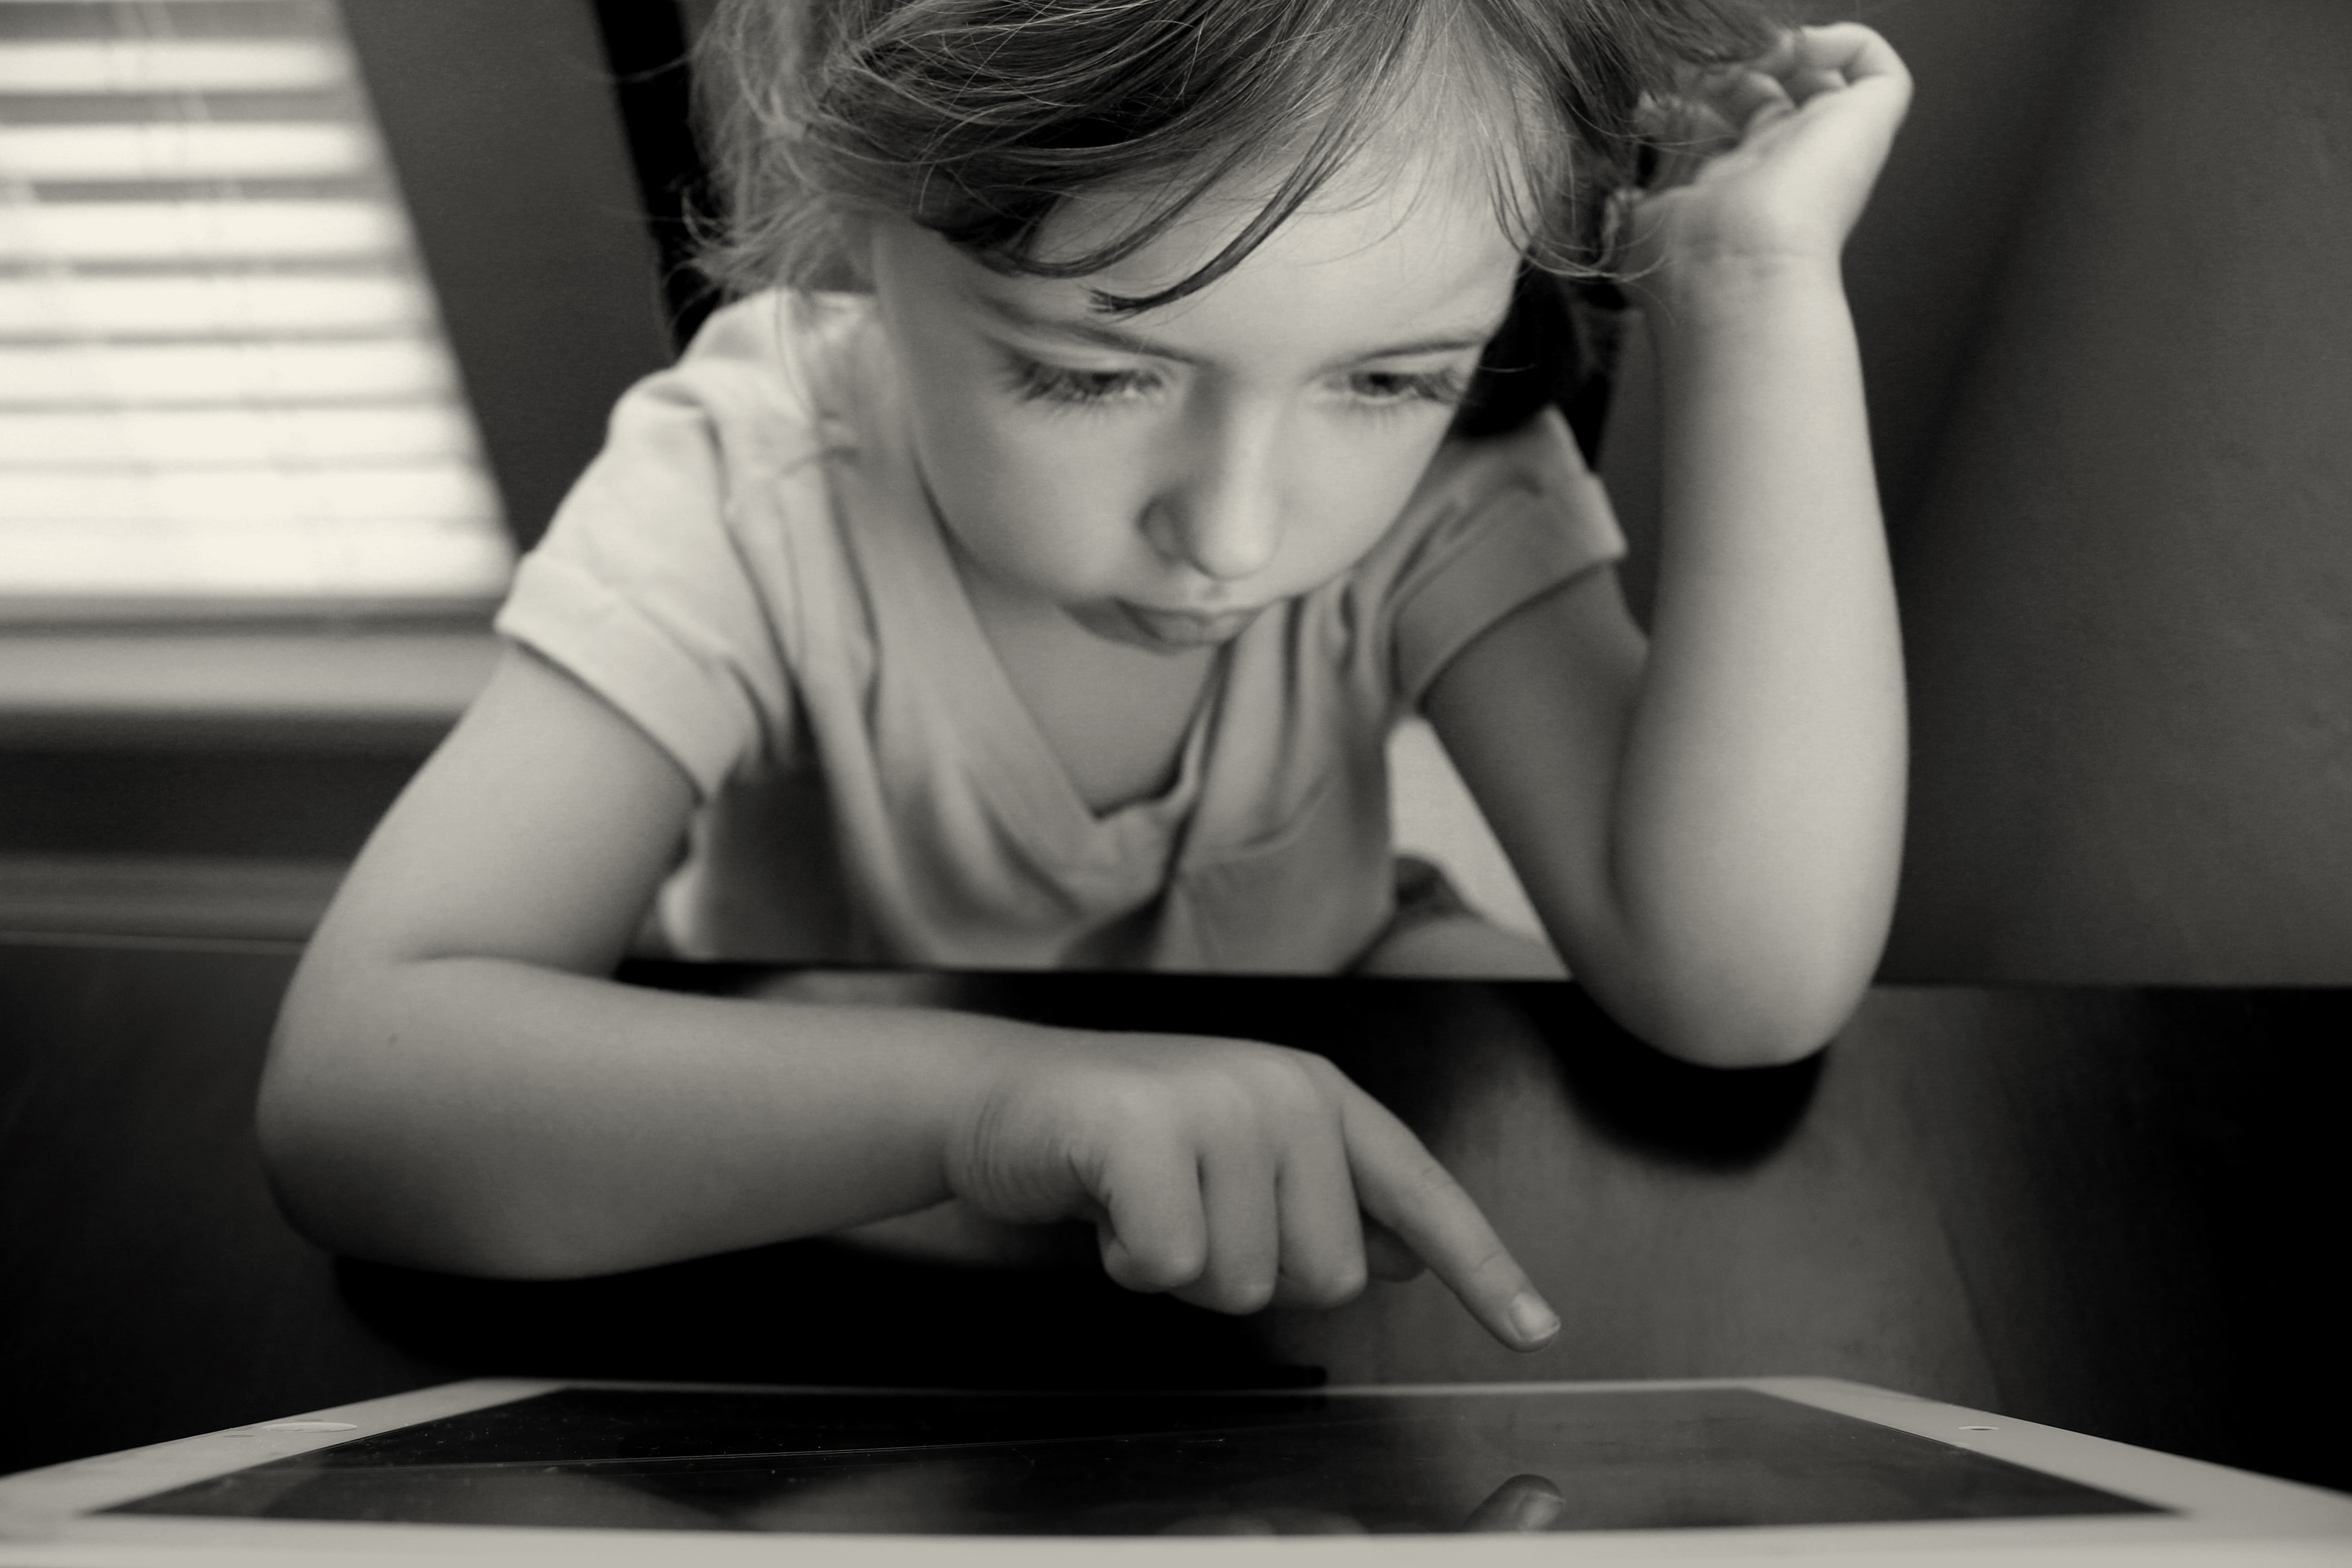 Child using a tablet for distance learning